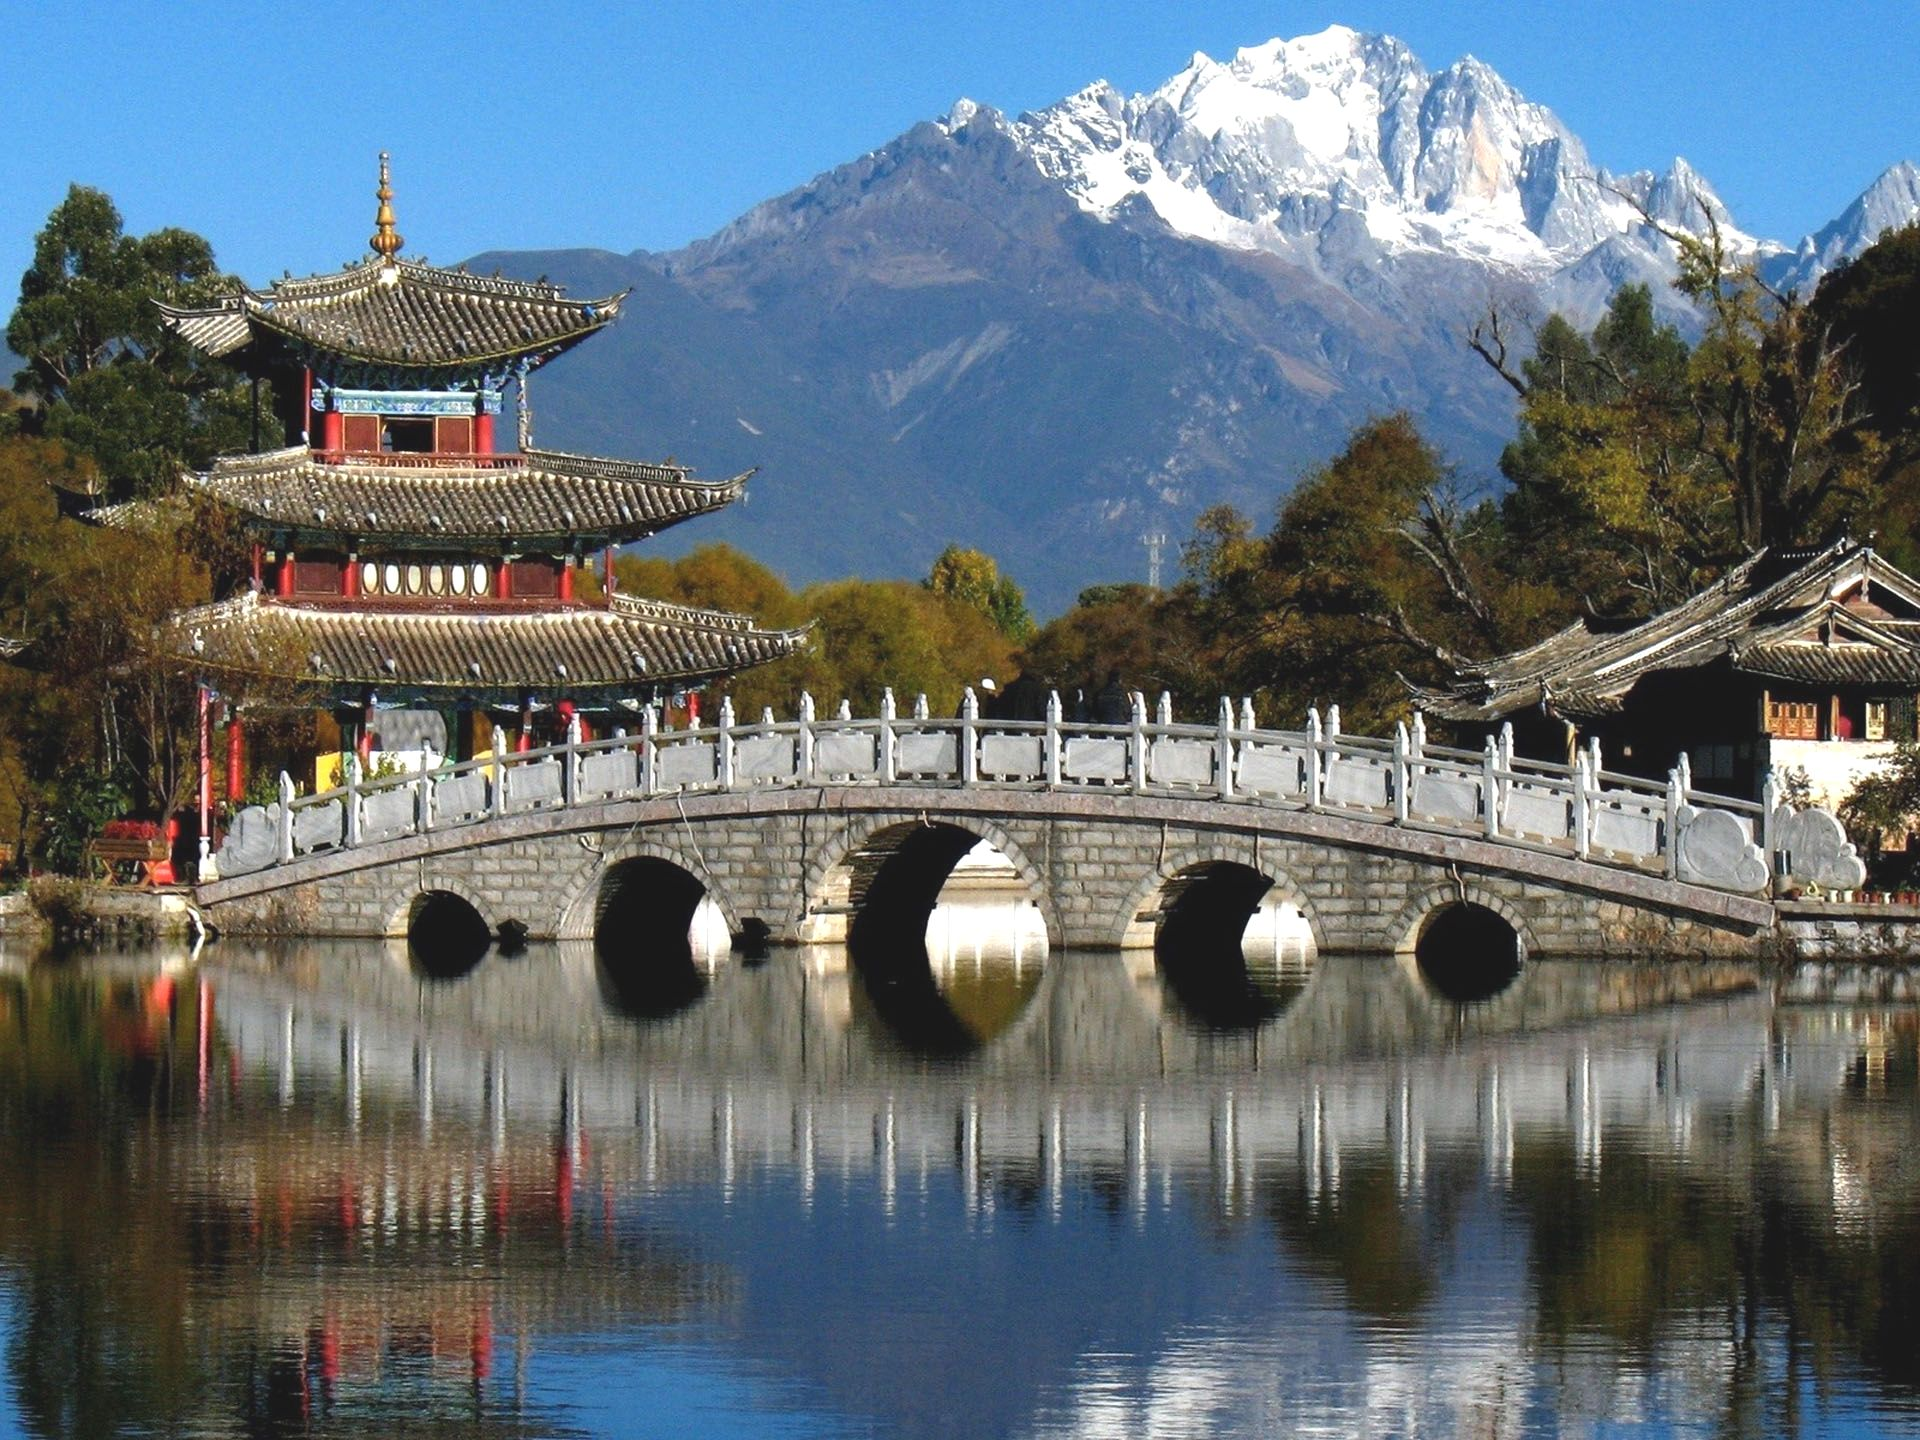 Chinese Temple and a Bridge over a Lake in China with Snow-Capped Mountains in the Background